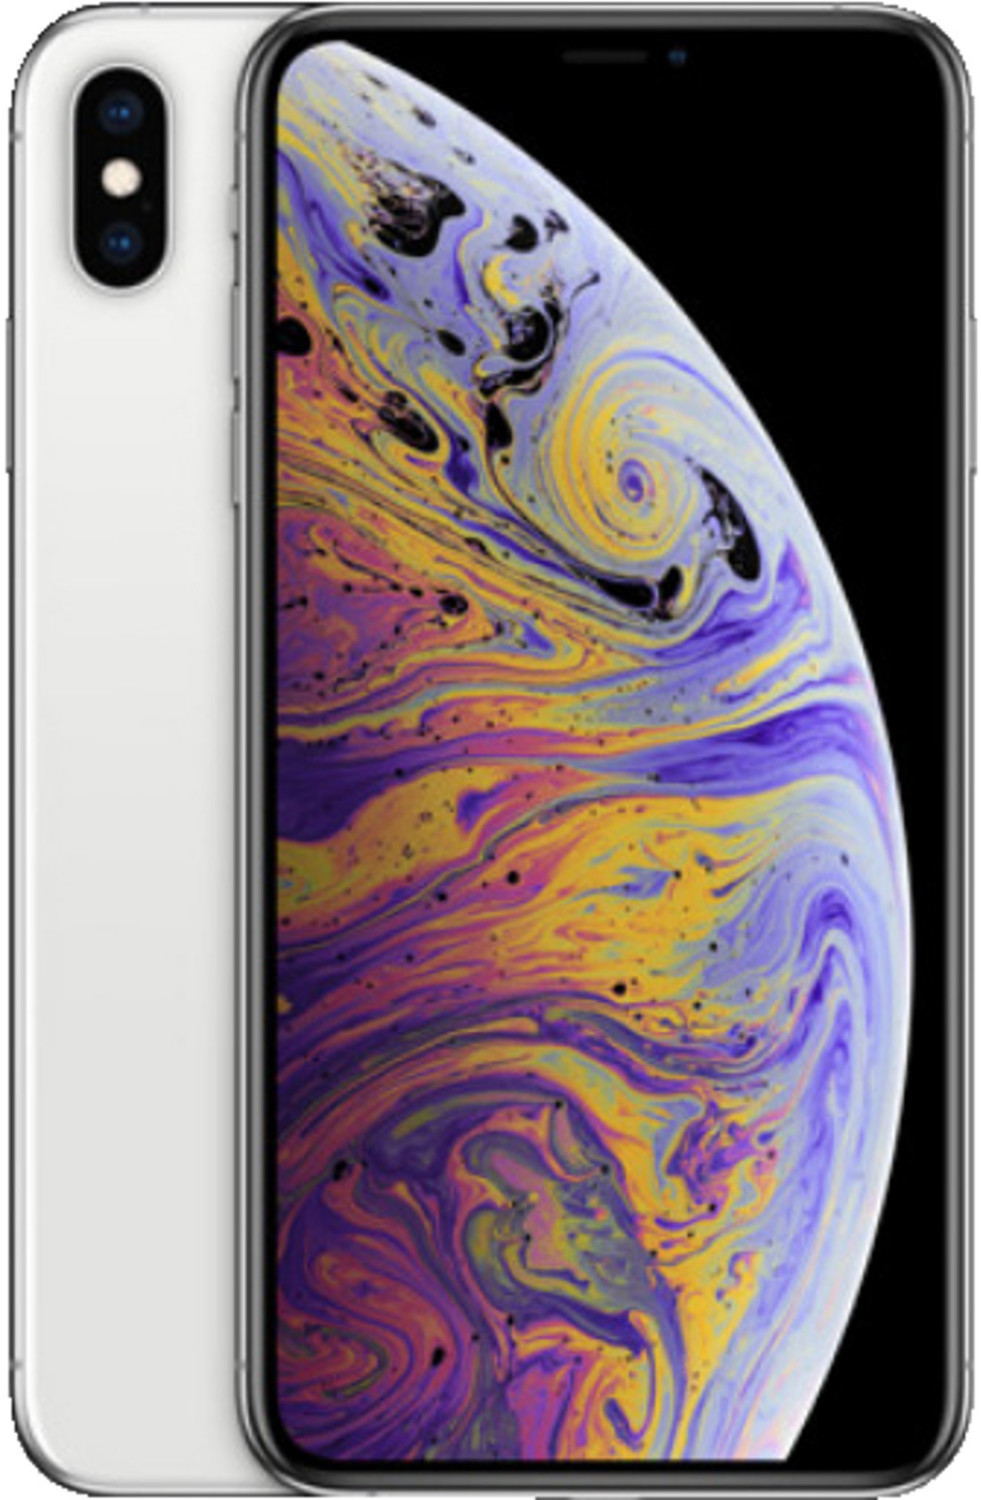 Image of Apple iPhone XS Max 256GB argento